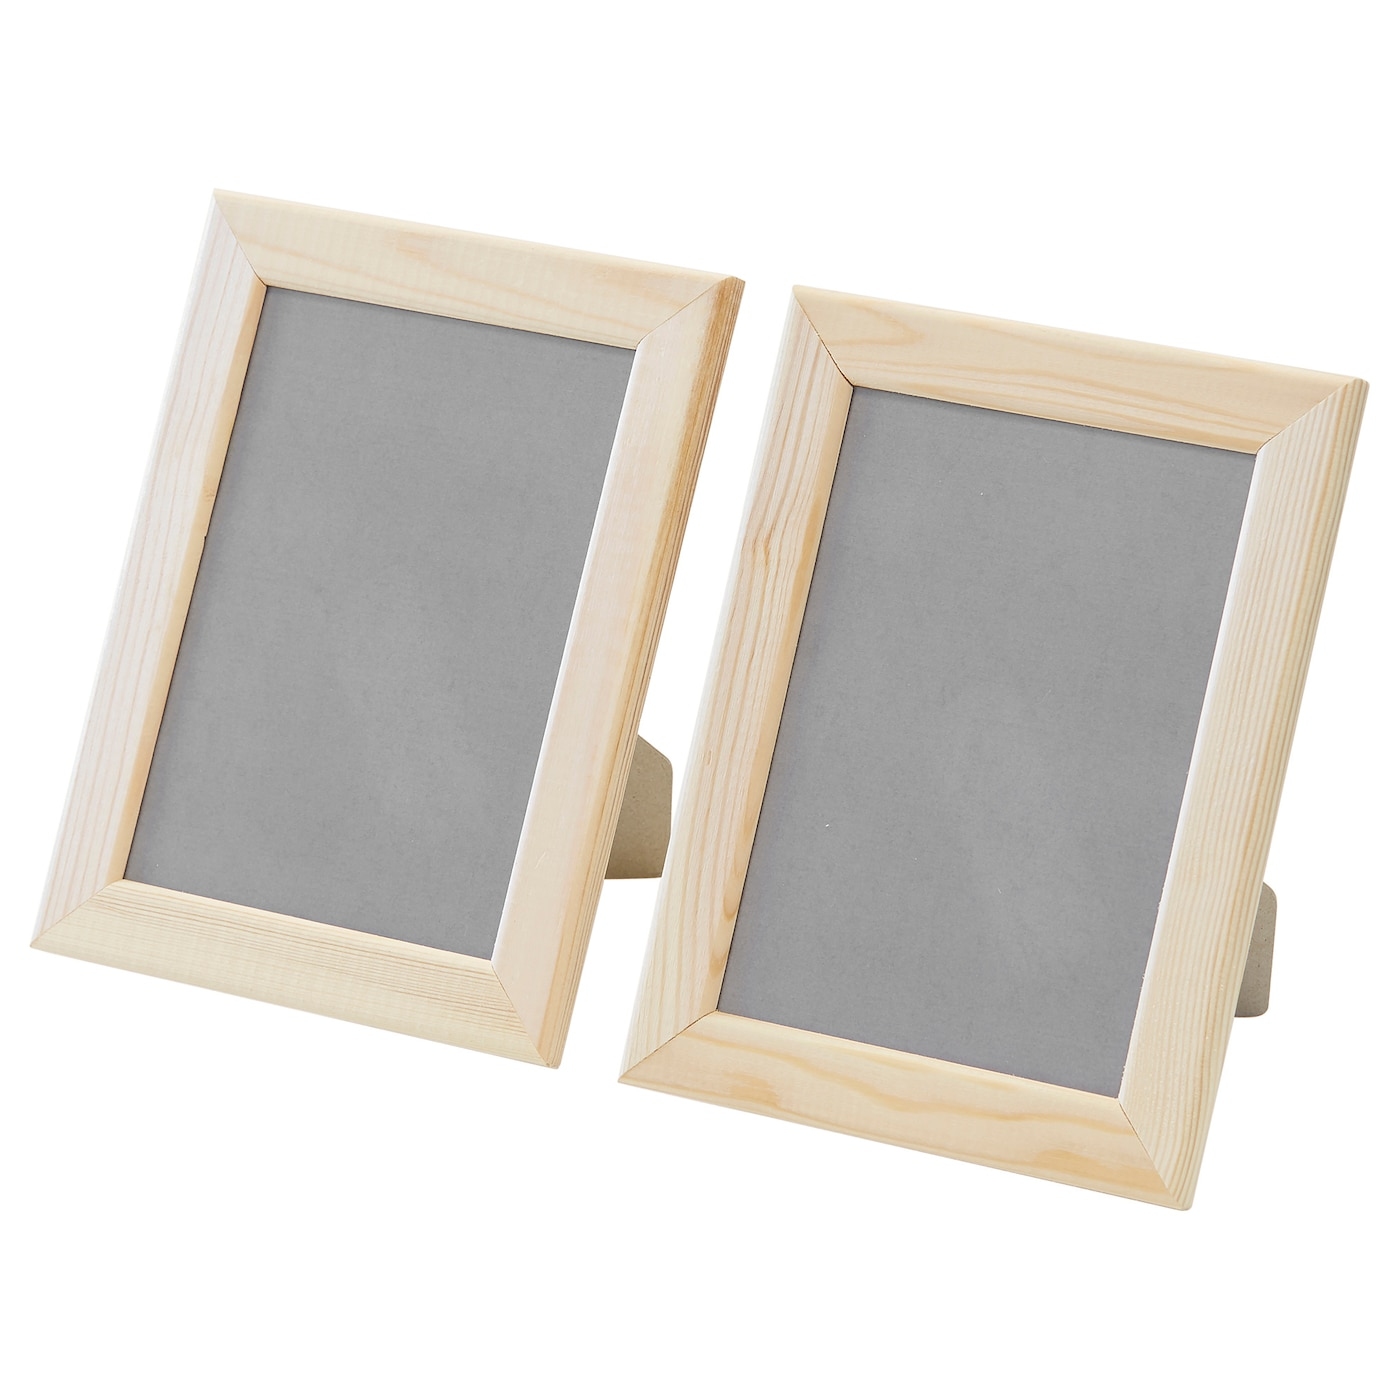 IKEA VANKIVA frame Available in different sizes.